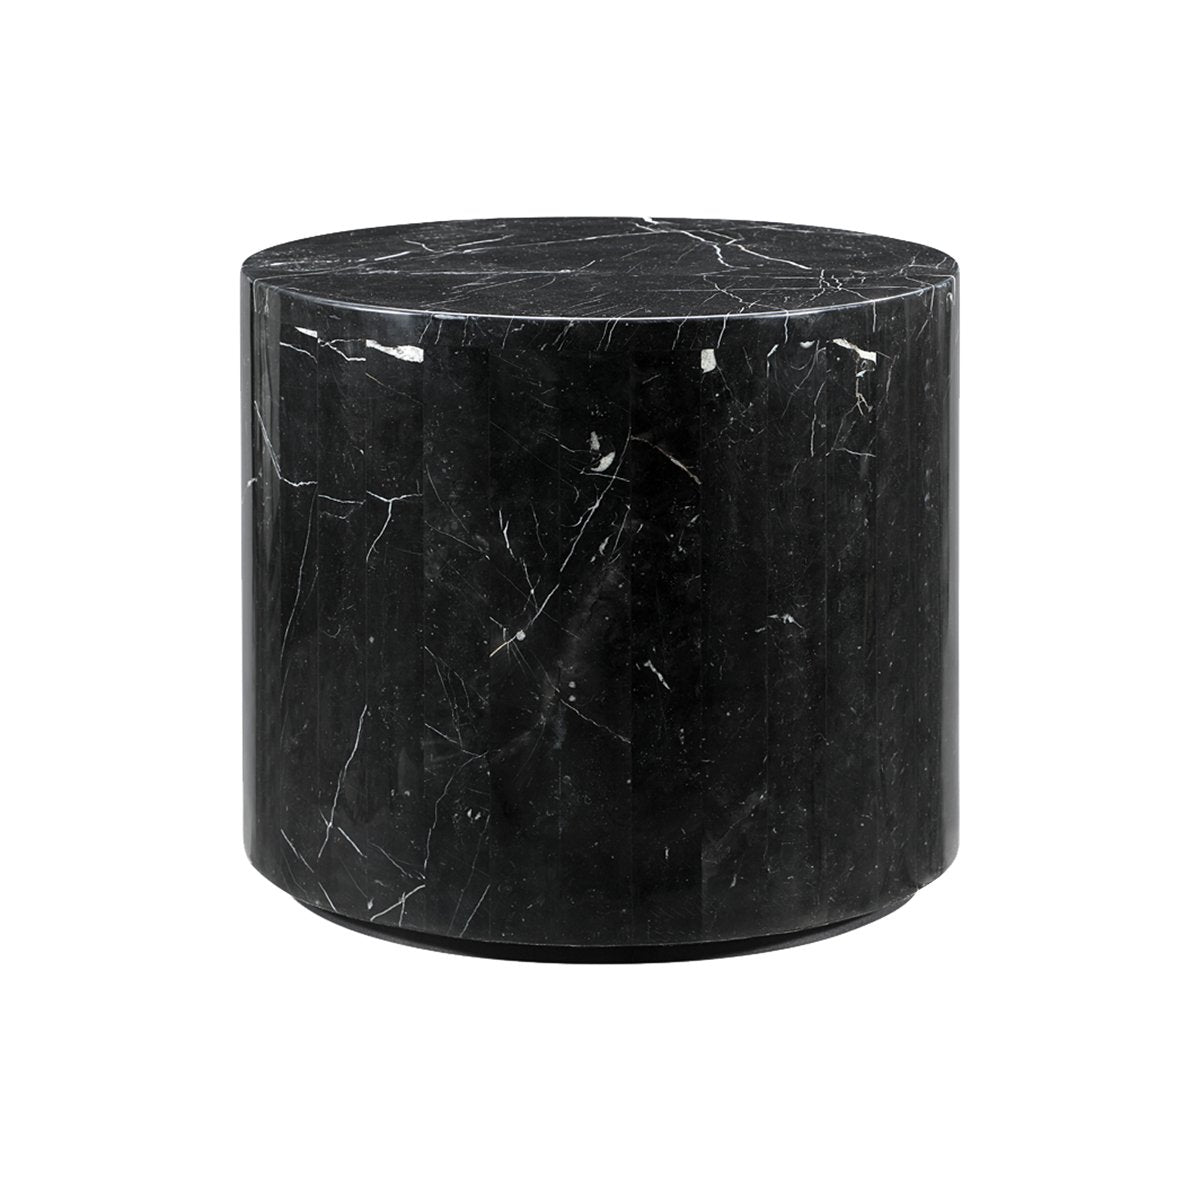 [FVT040BLK] Werbel Side Table